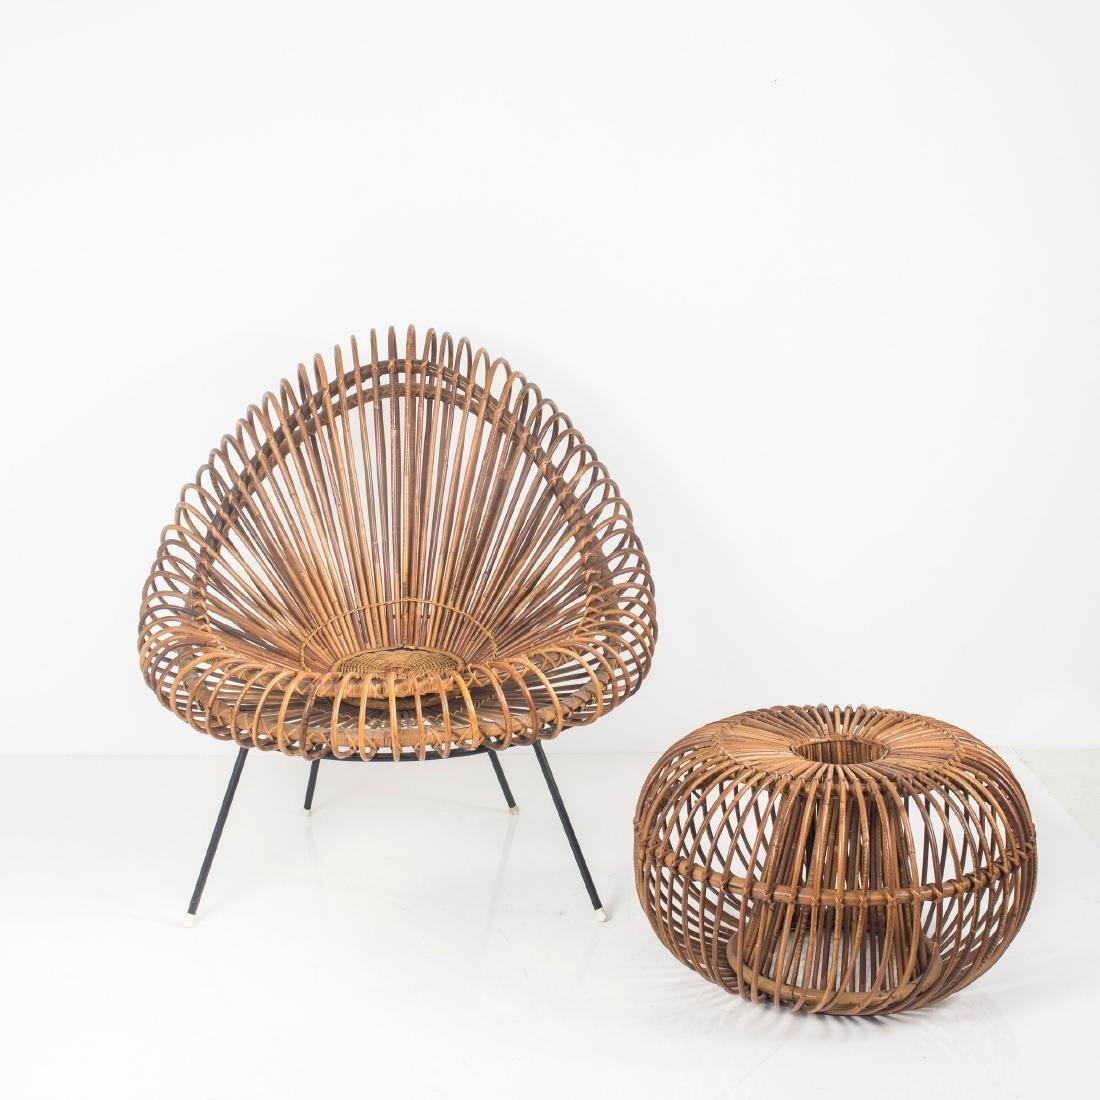 Wicker chair and ottoman, c. 1955 - 7